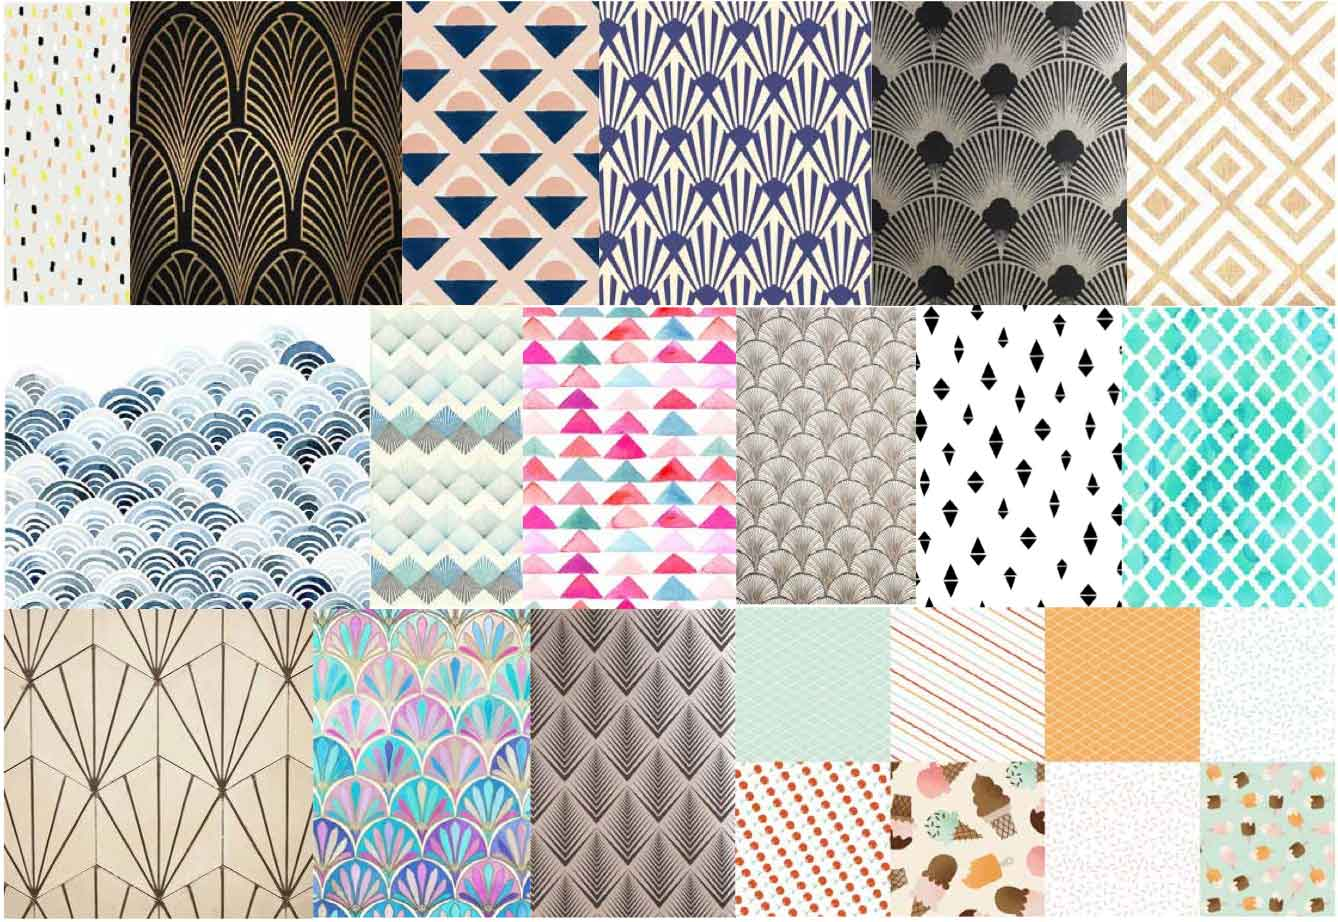 art deco pattern mood board by freelance graphic designer melissa carne